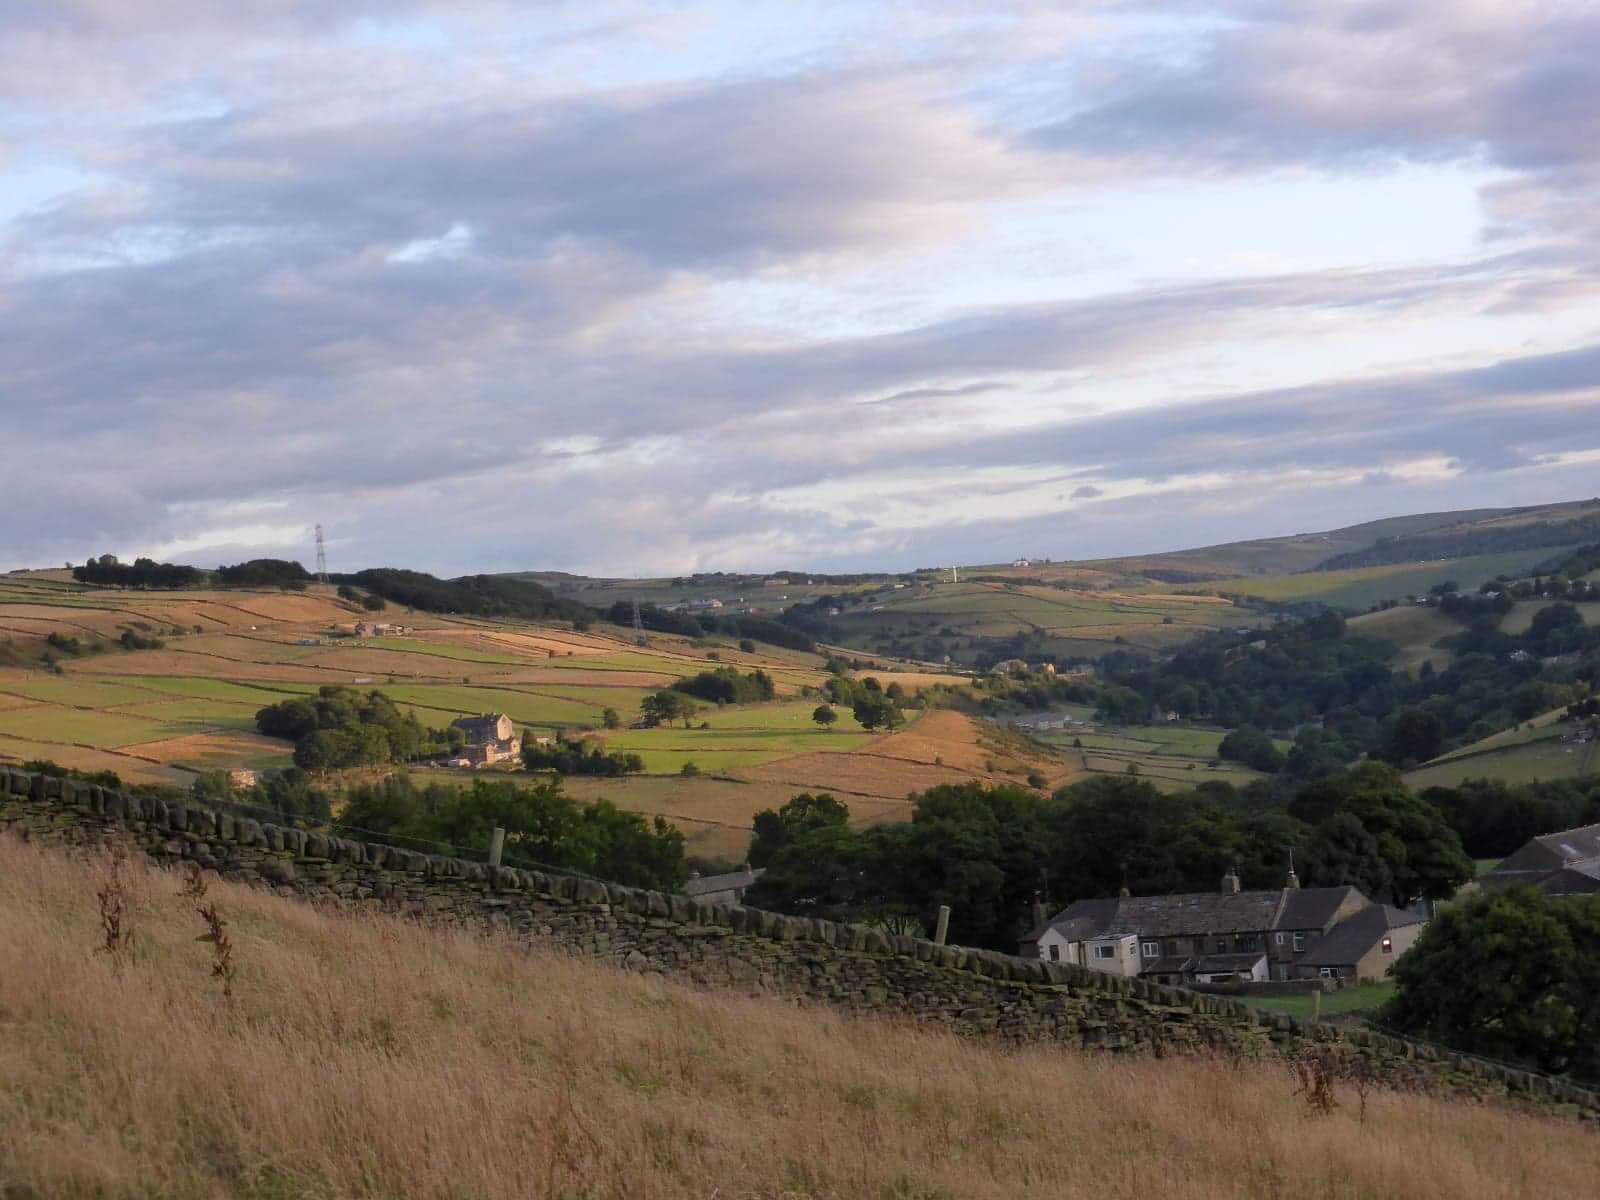 The view of Stainland Dean, Photo by David Culpan